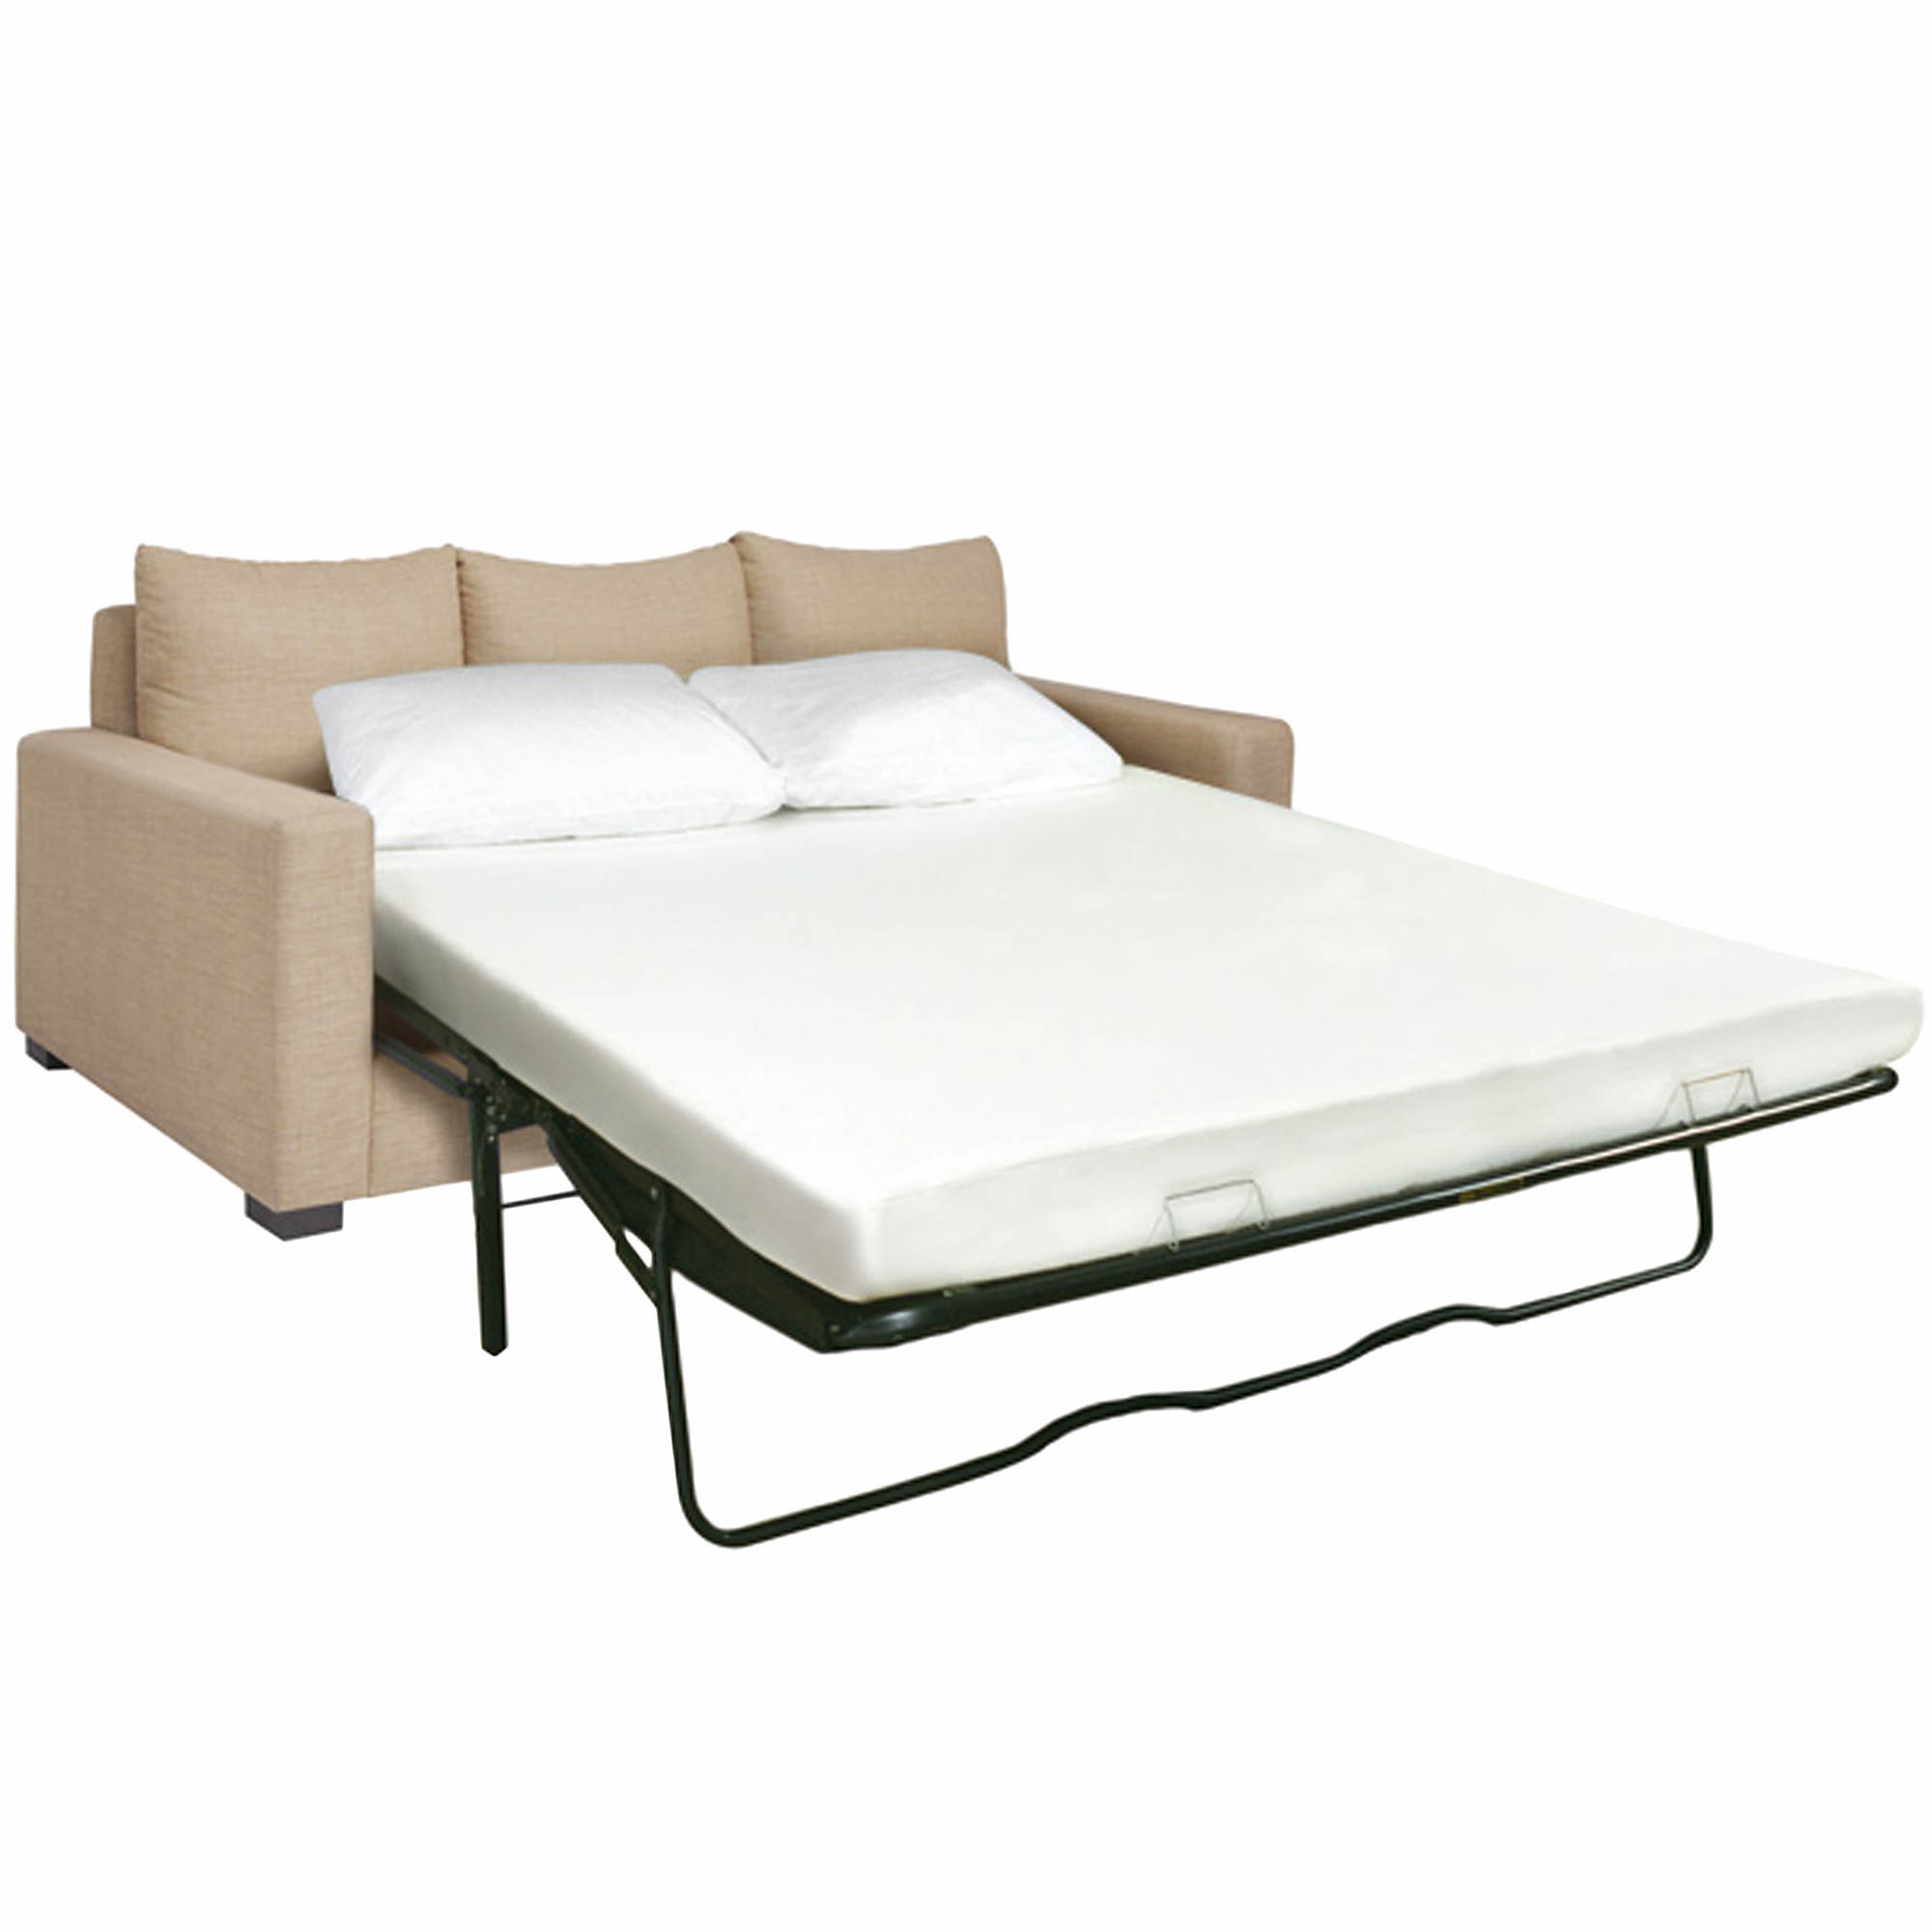 couch home mattress itm bed grey inflatable sleeping sofa bestway queen mats double air bw single